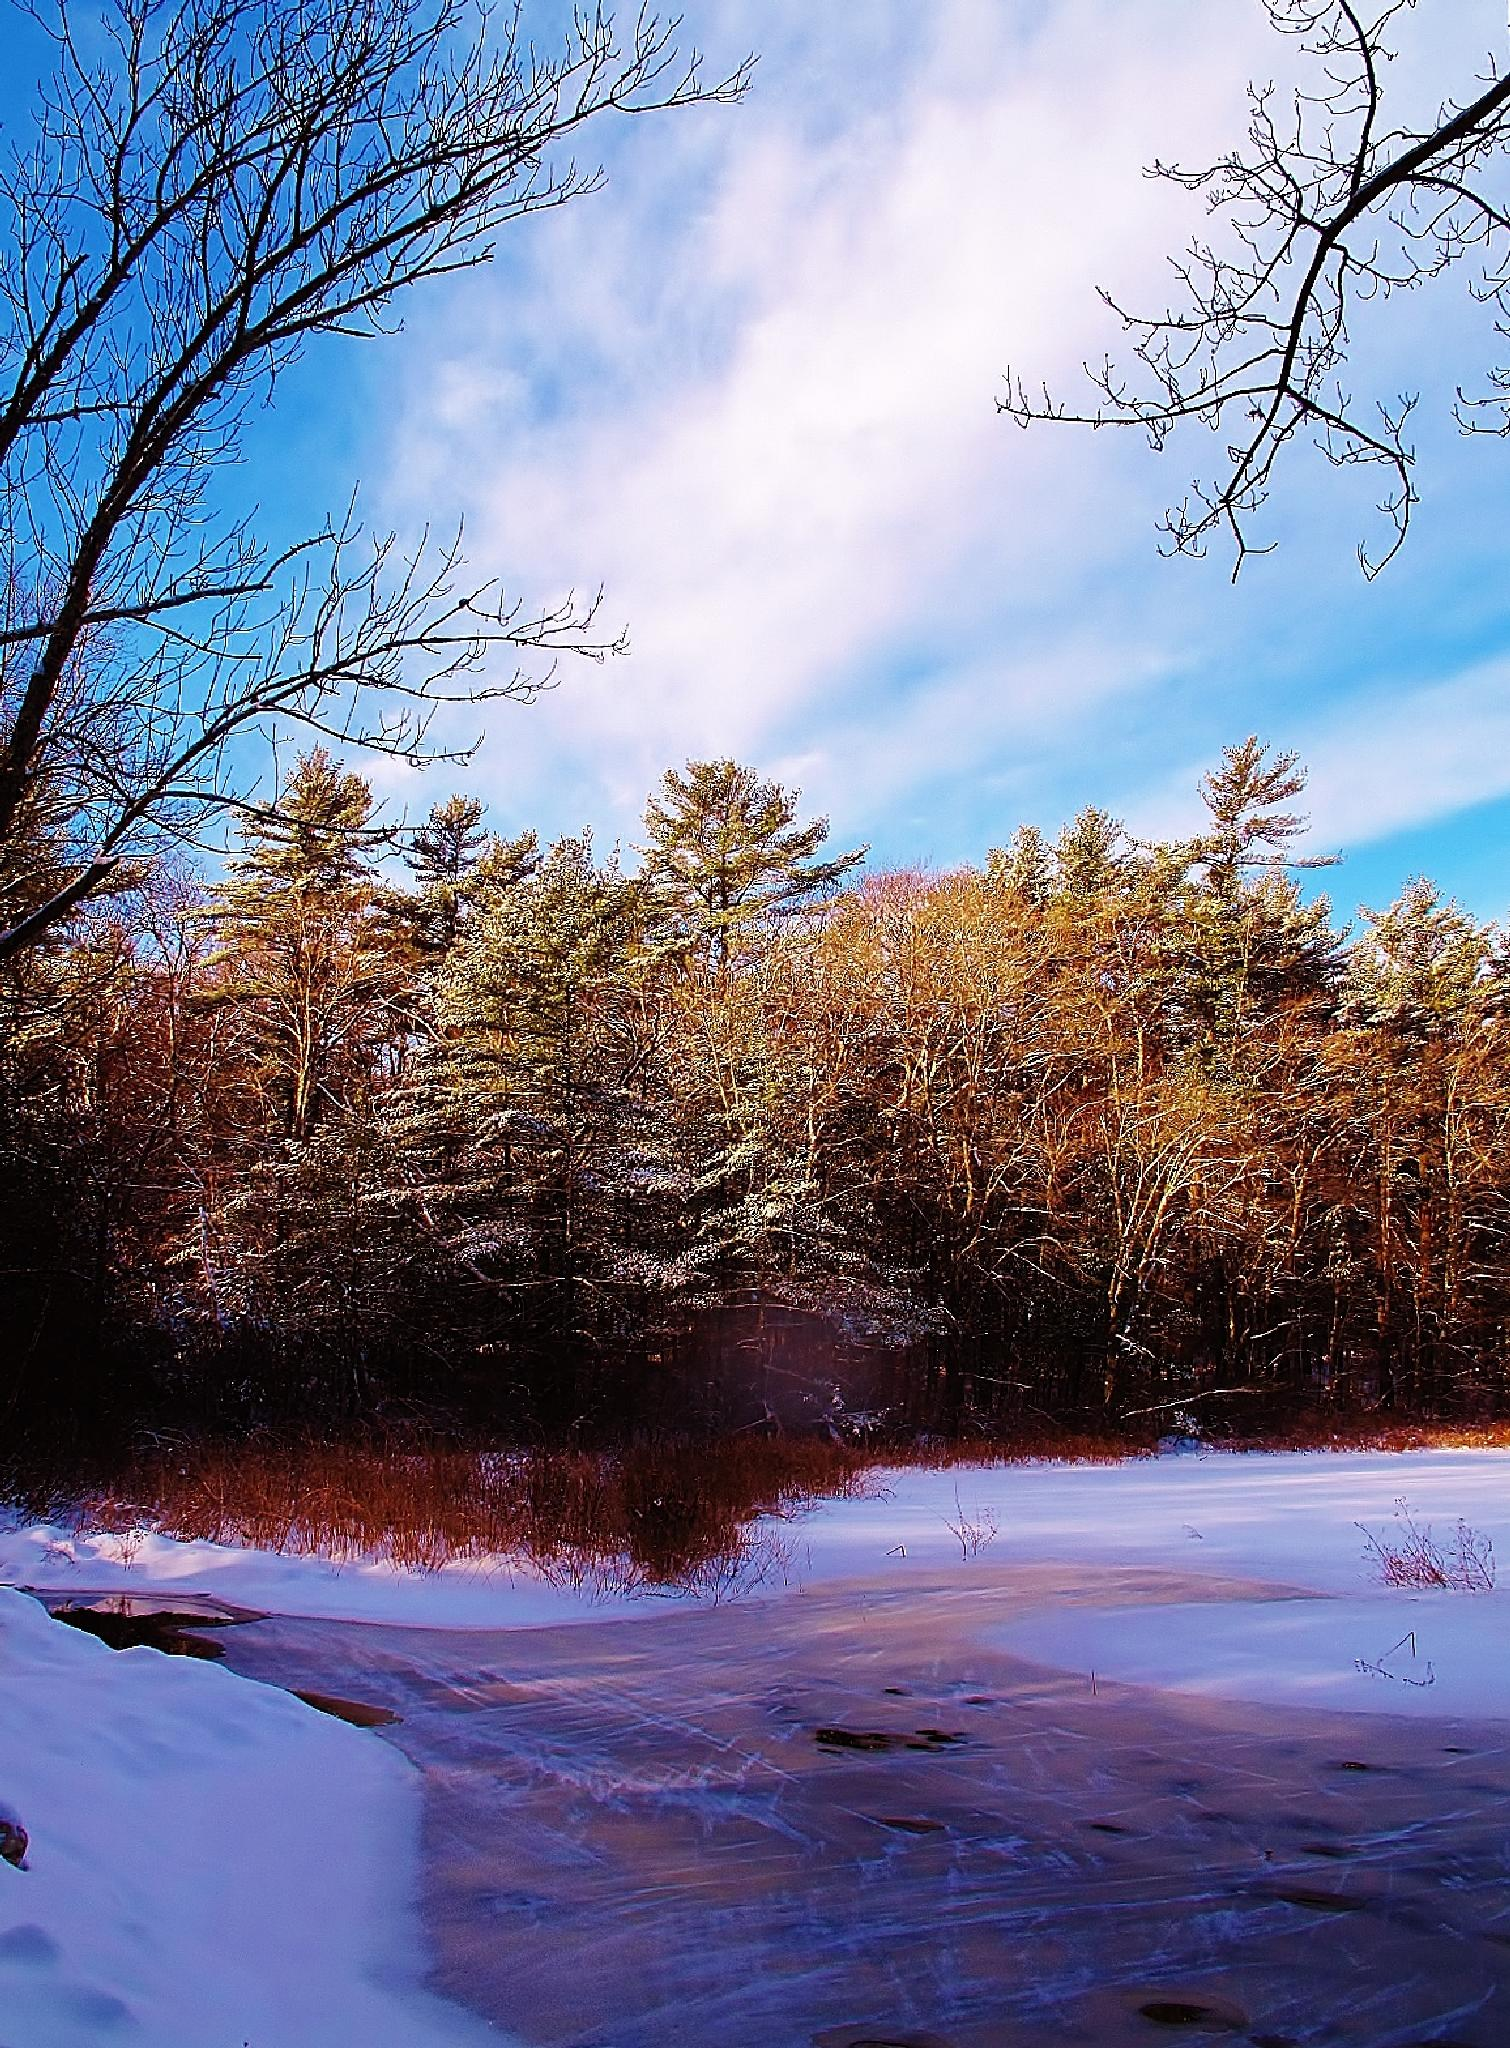 ice on the pond by www.paulcrimifinearts.com by paulcrimi178